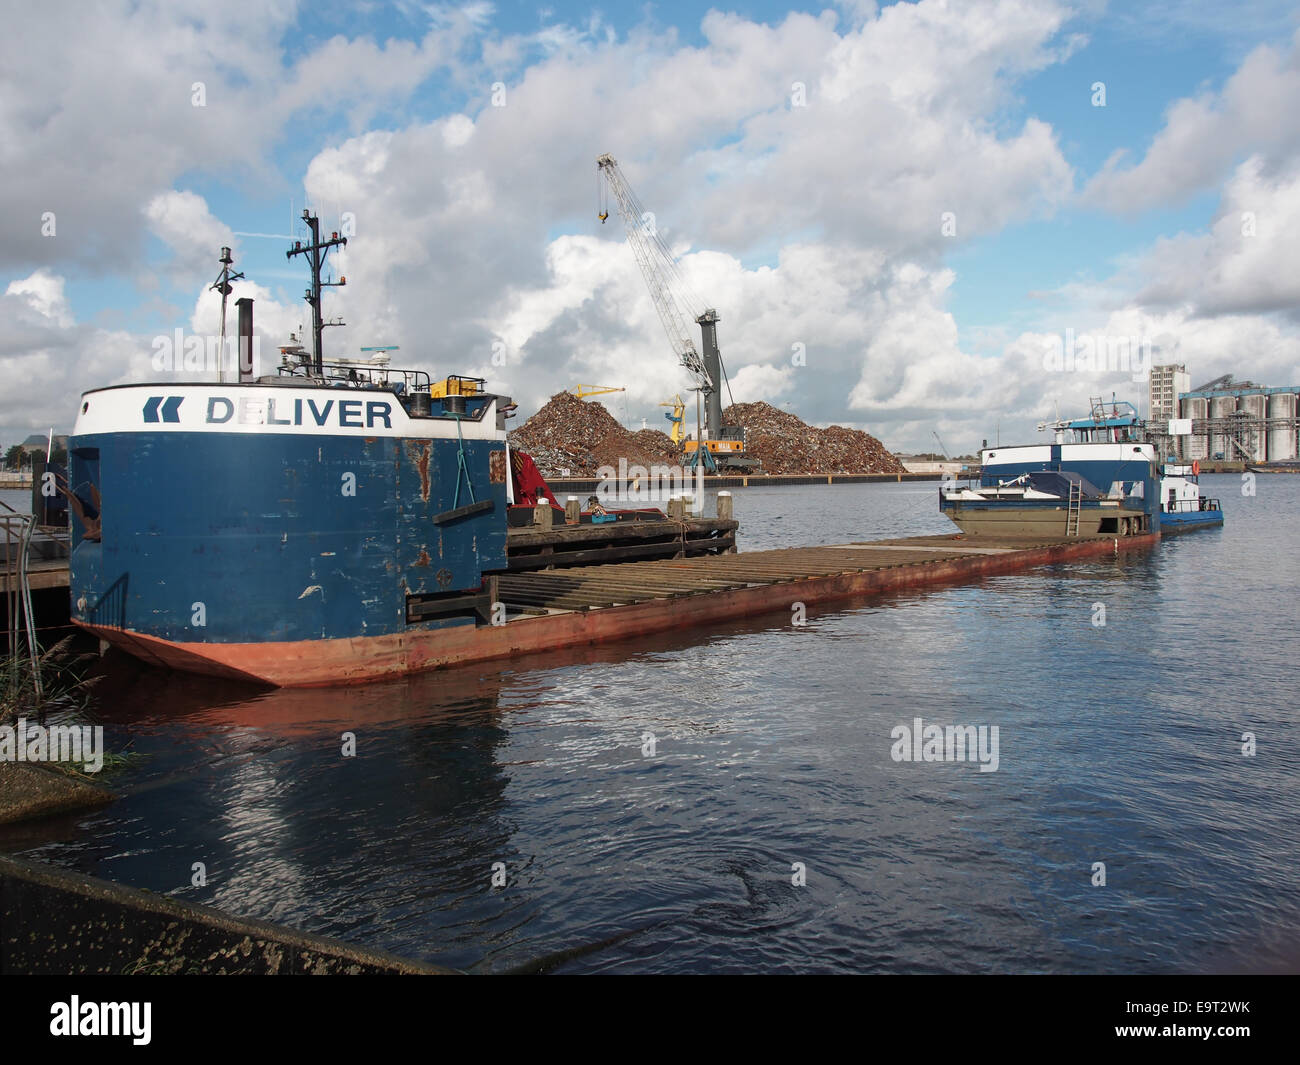 Devotion, ENI 02329493 with barge DELIVER, especially built for the transportation of houseboats at Port of Amsterdam, - Stock Image